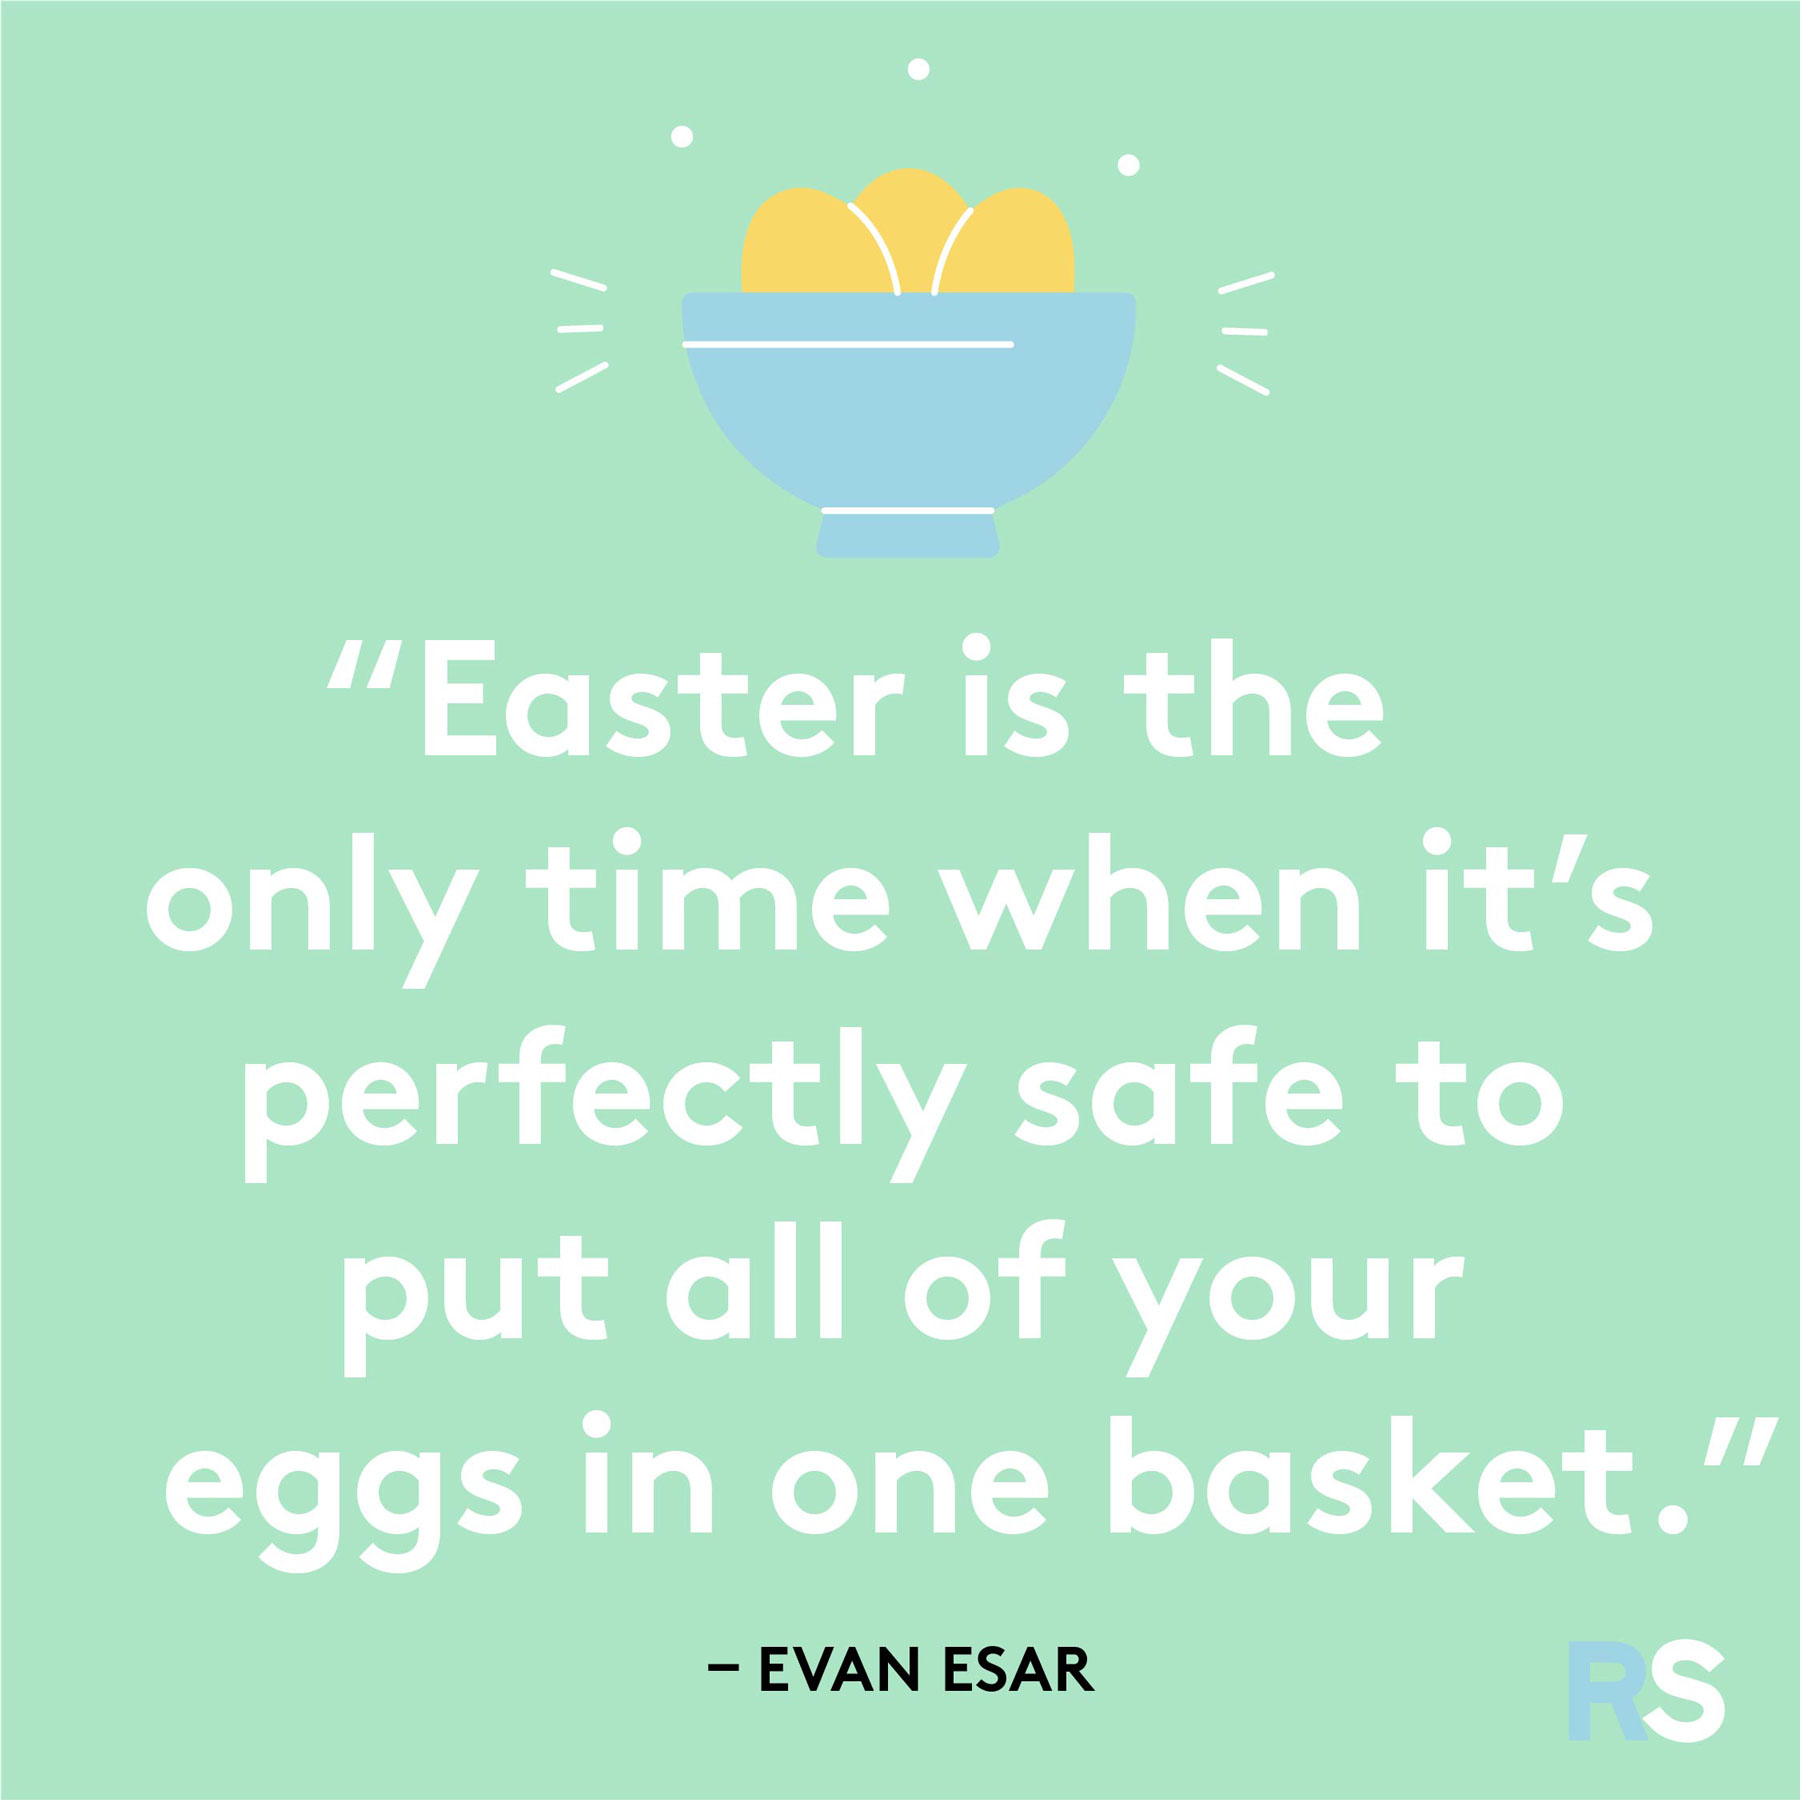 Funny and Meaningful Easter Quotes, Captions, and Messages | Real ...